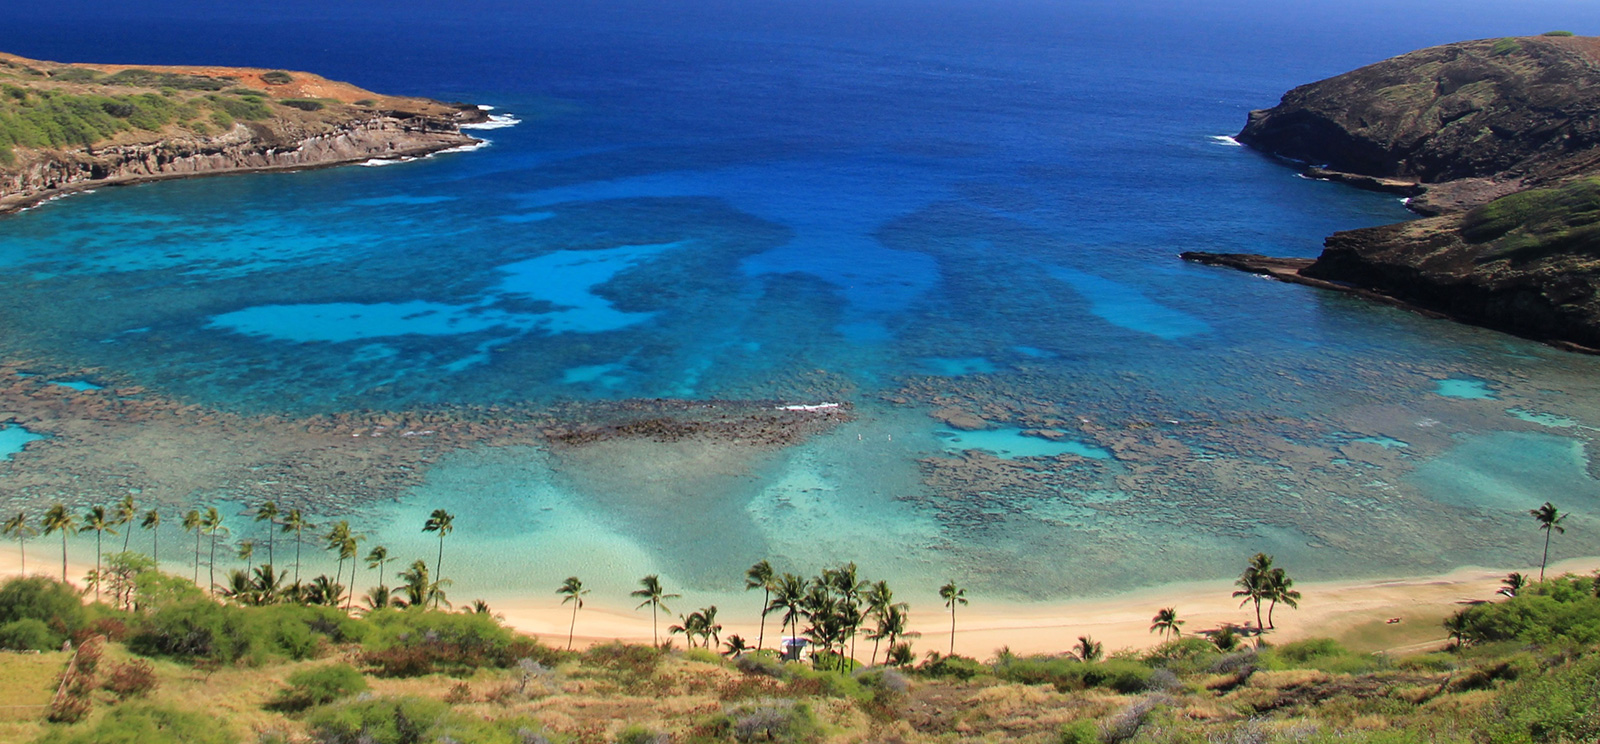 Hawaii S Coral Reefs And Reef Preservation Hawaiian Airlines